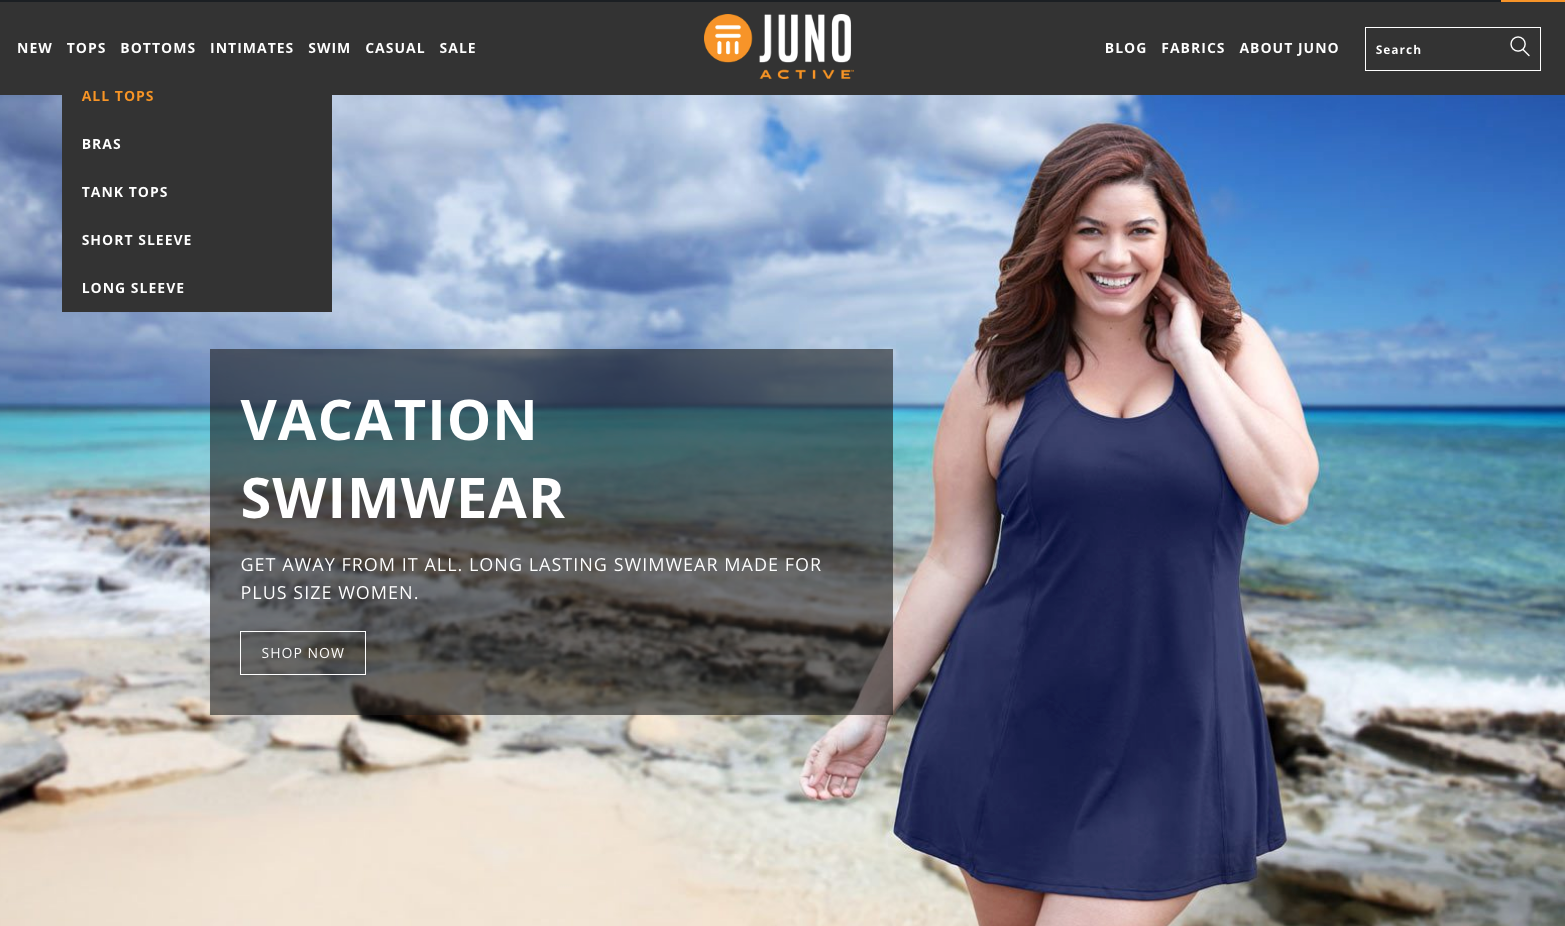 JunoActive launches new website